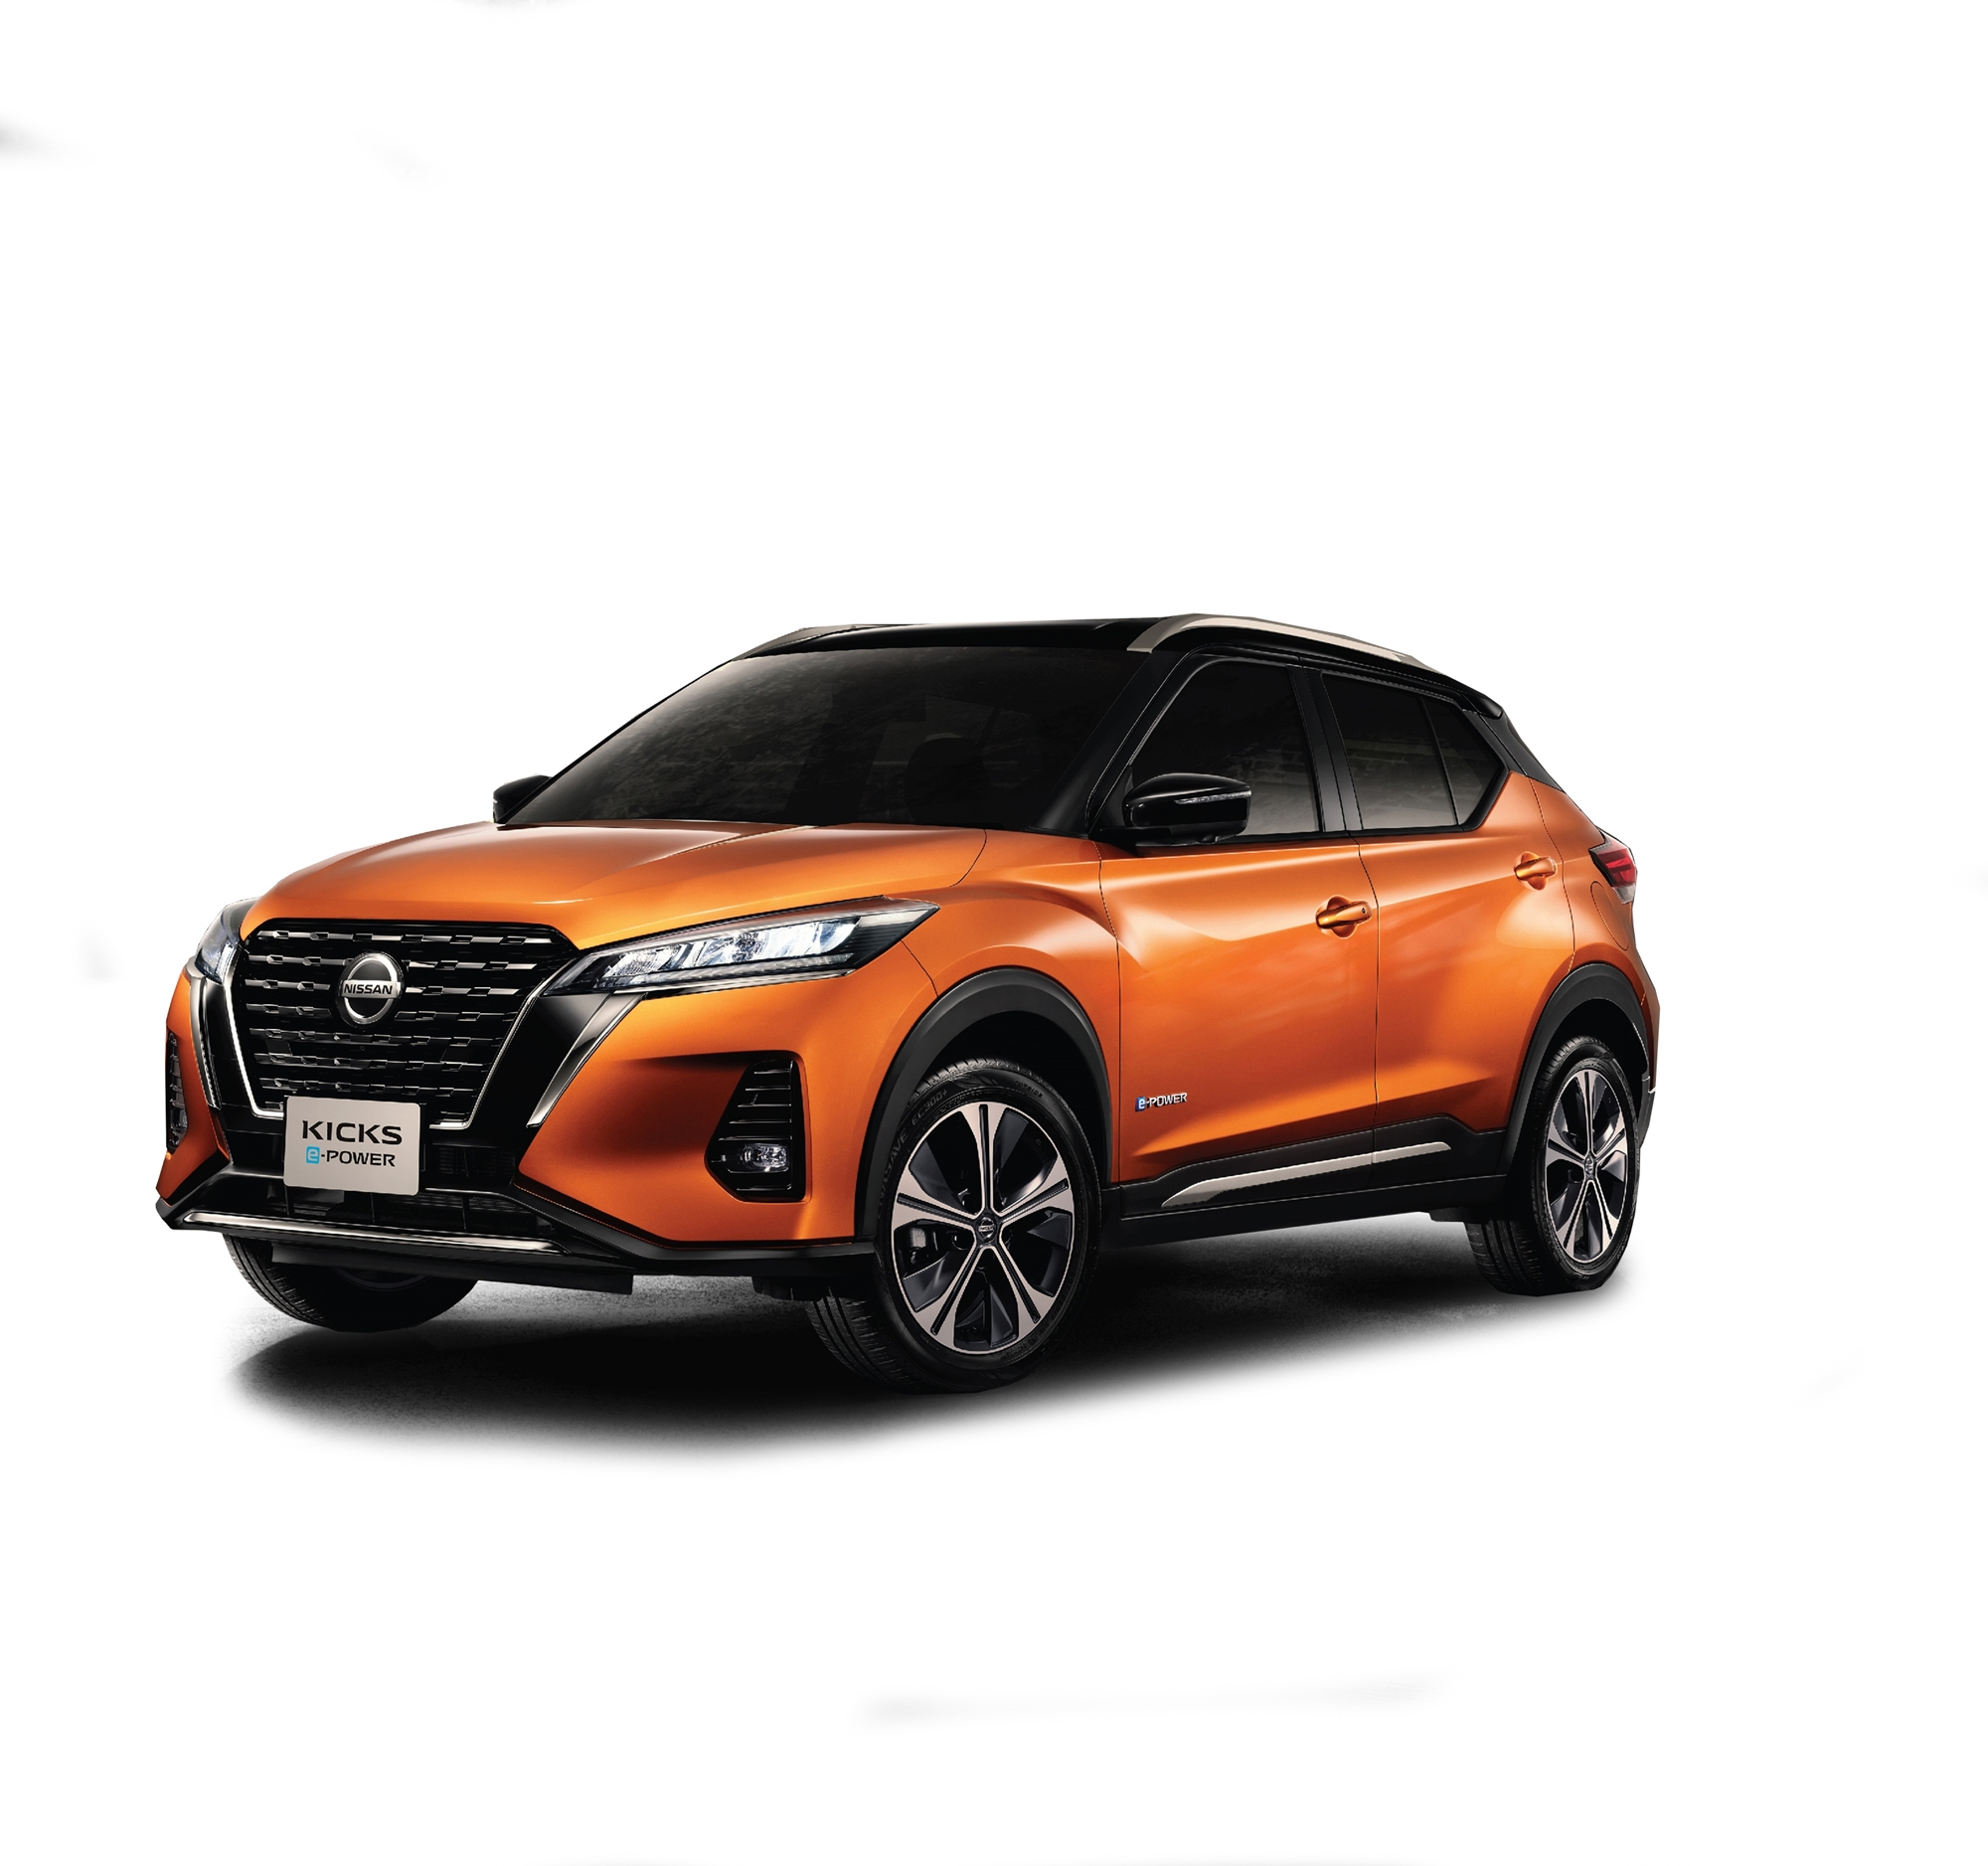 2021 nissan kicks sr full specs, features and price | carbuzz